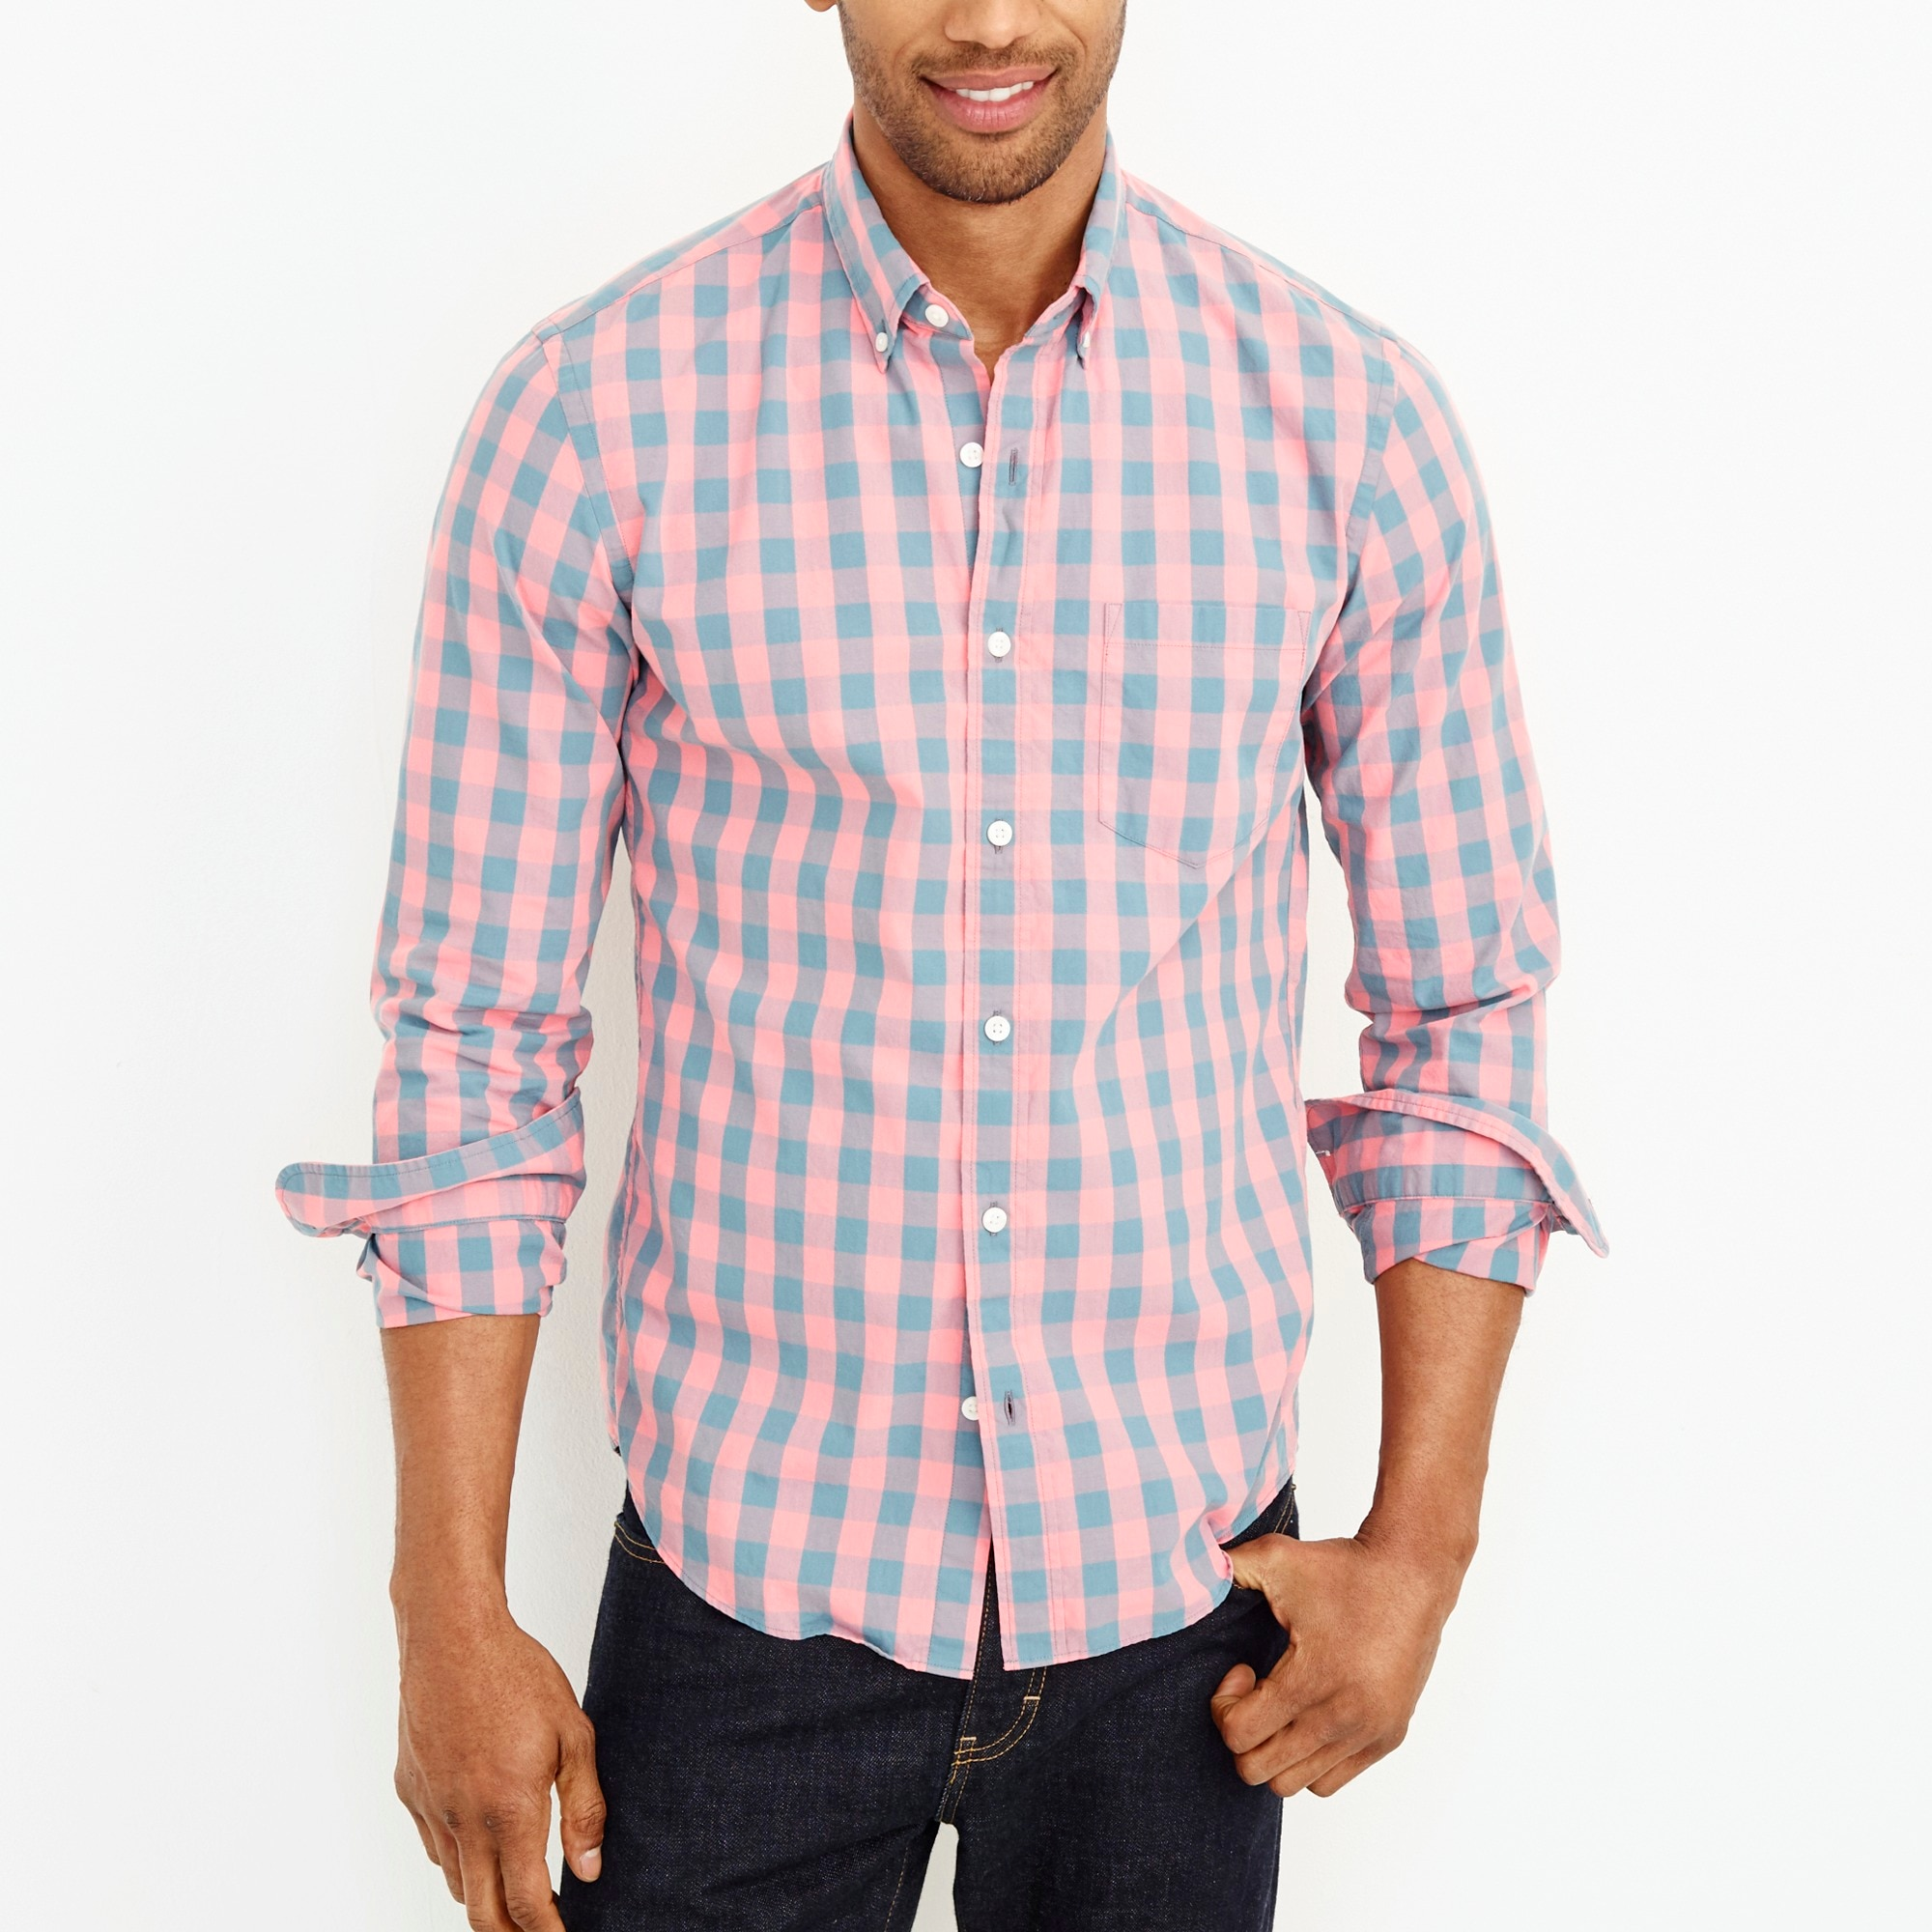 Image 1 for Washed shirt in gingham